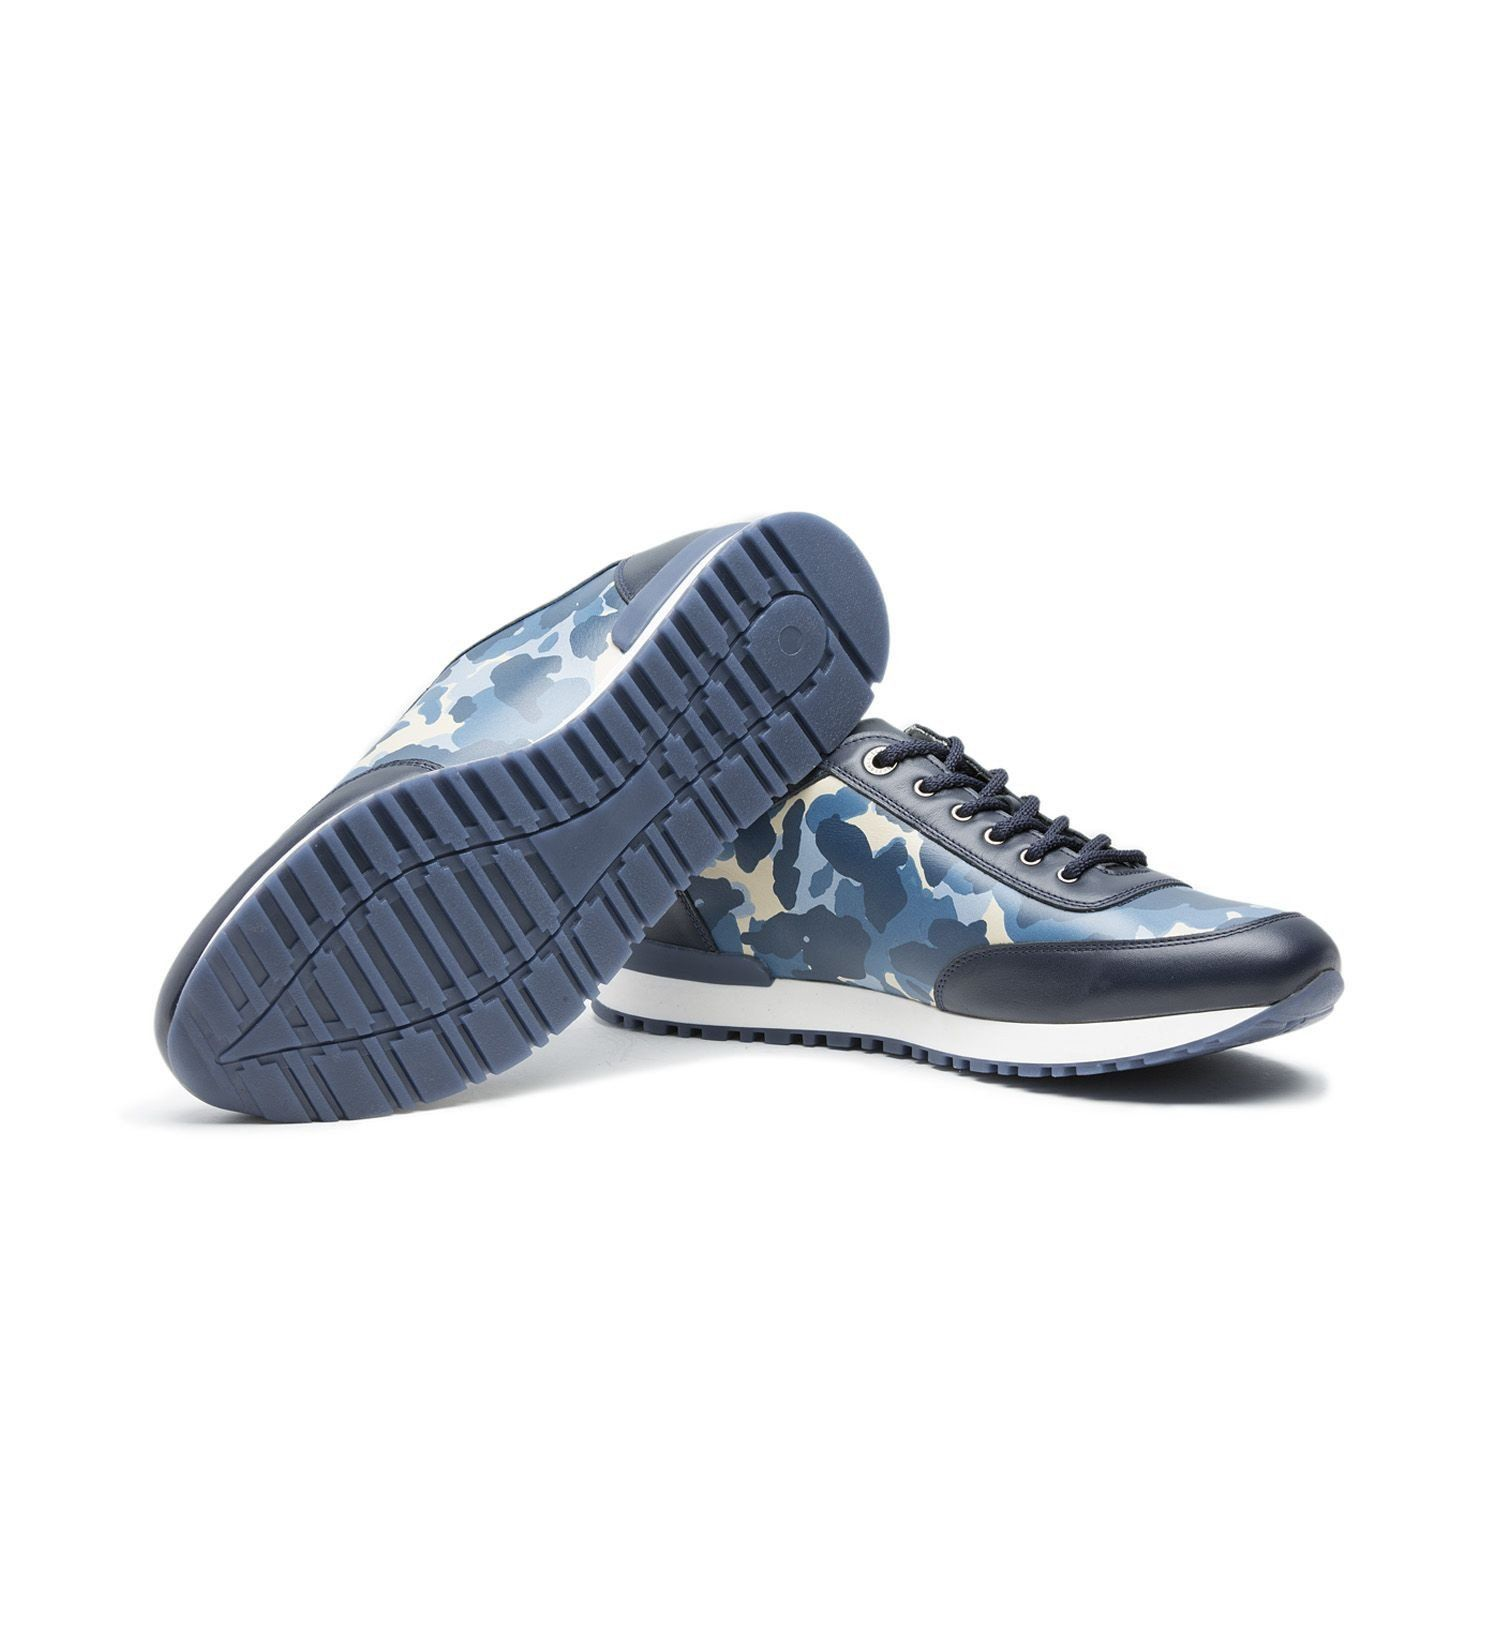 LEATHER SNEAKER,SHOES,A.TESTONI, | GentRow.com